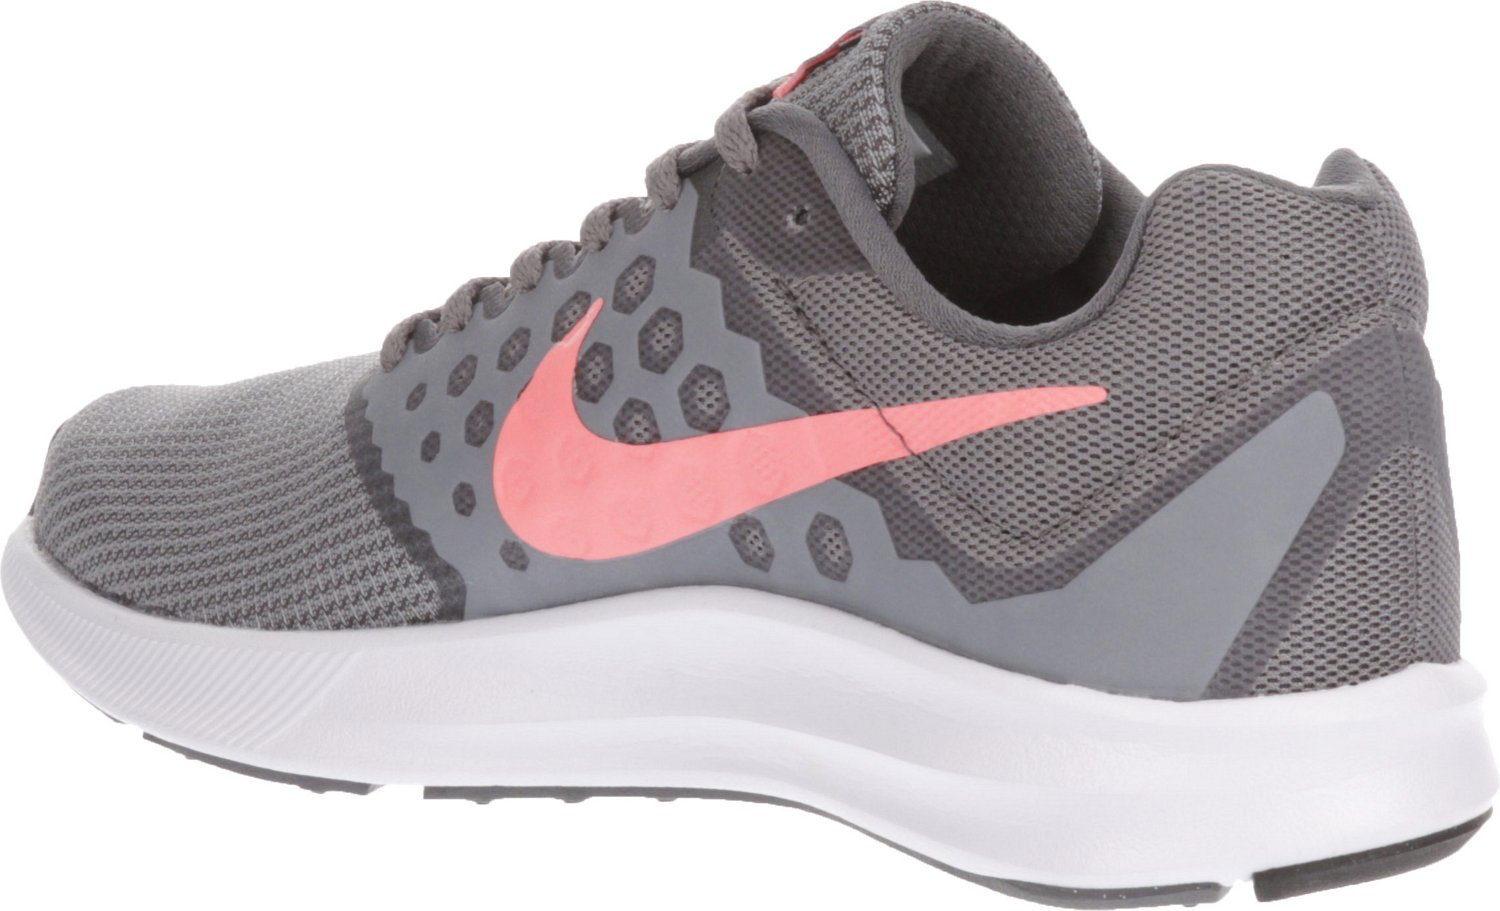 on sale 57354 31a27 Nike Women s Downshifter 7 Running Shoes - view number 1 ...